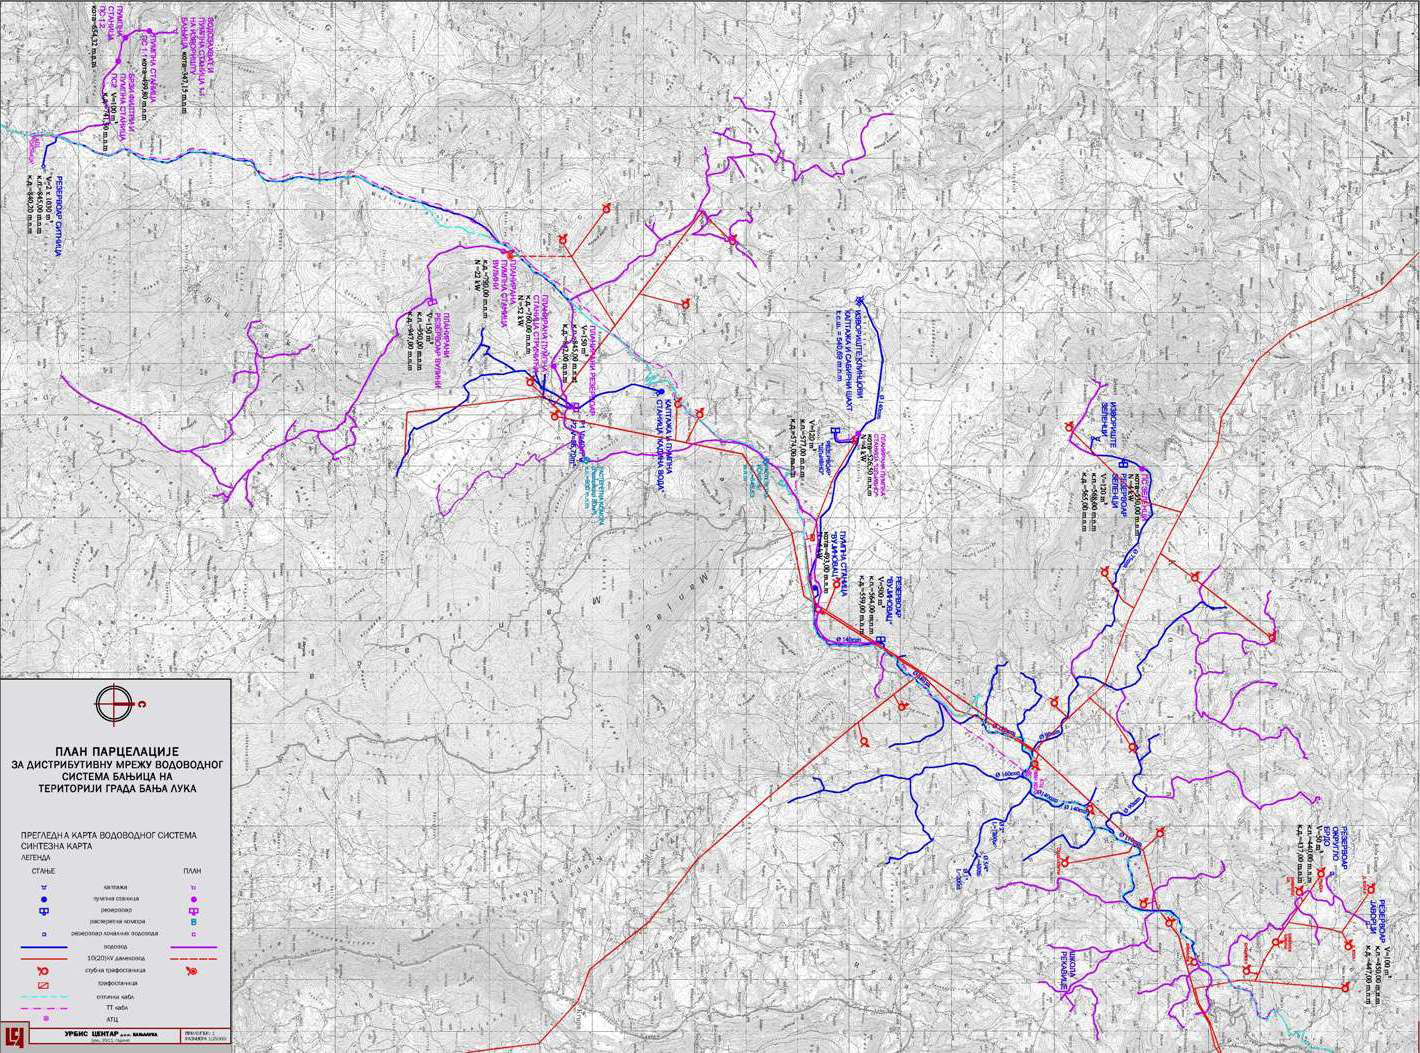 PARECLLING PLAN FOR THE WATER MAIN NETWORK BANJICA IN THE